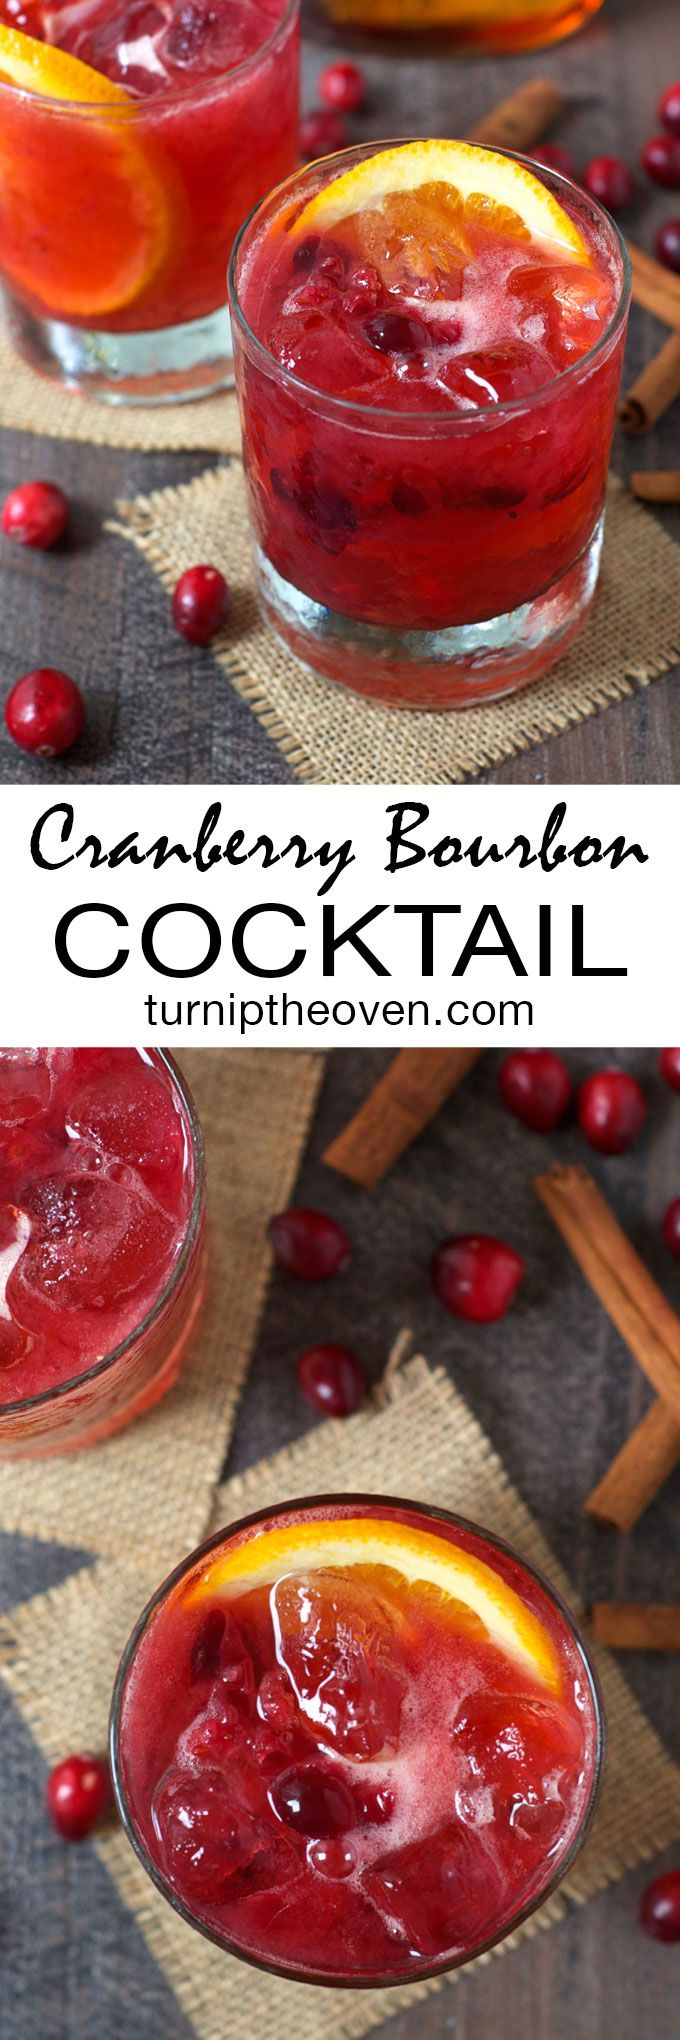 This festive, fizzy cranberry bourbon cocktail is made with only three simple ingredients!